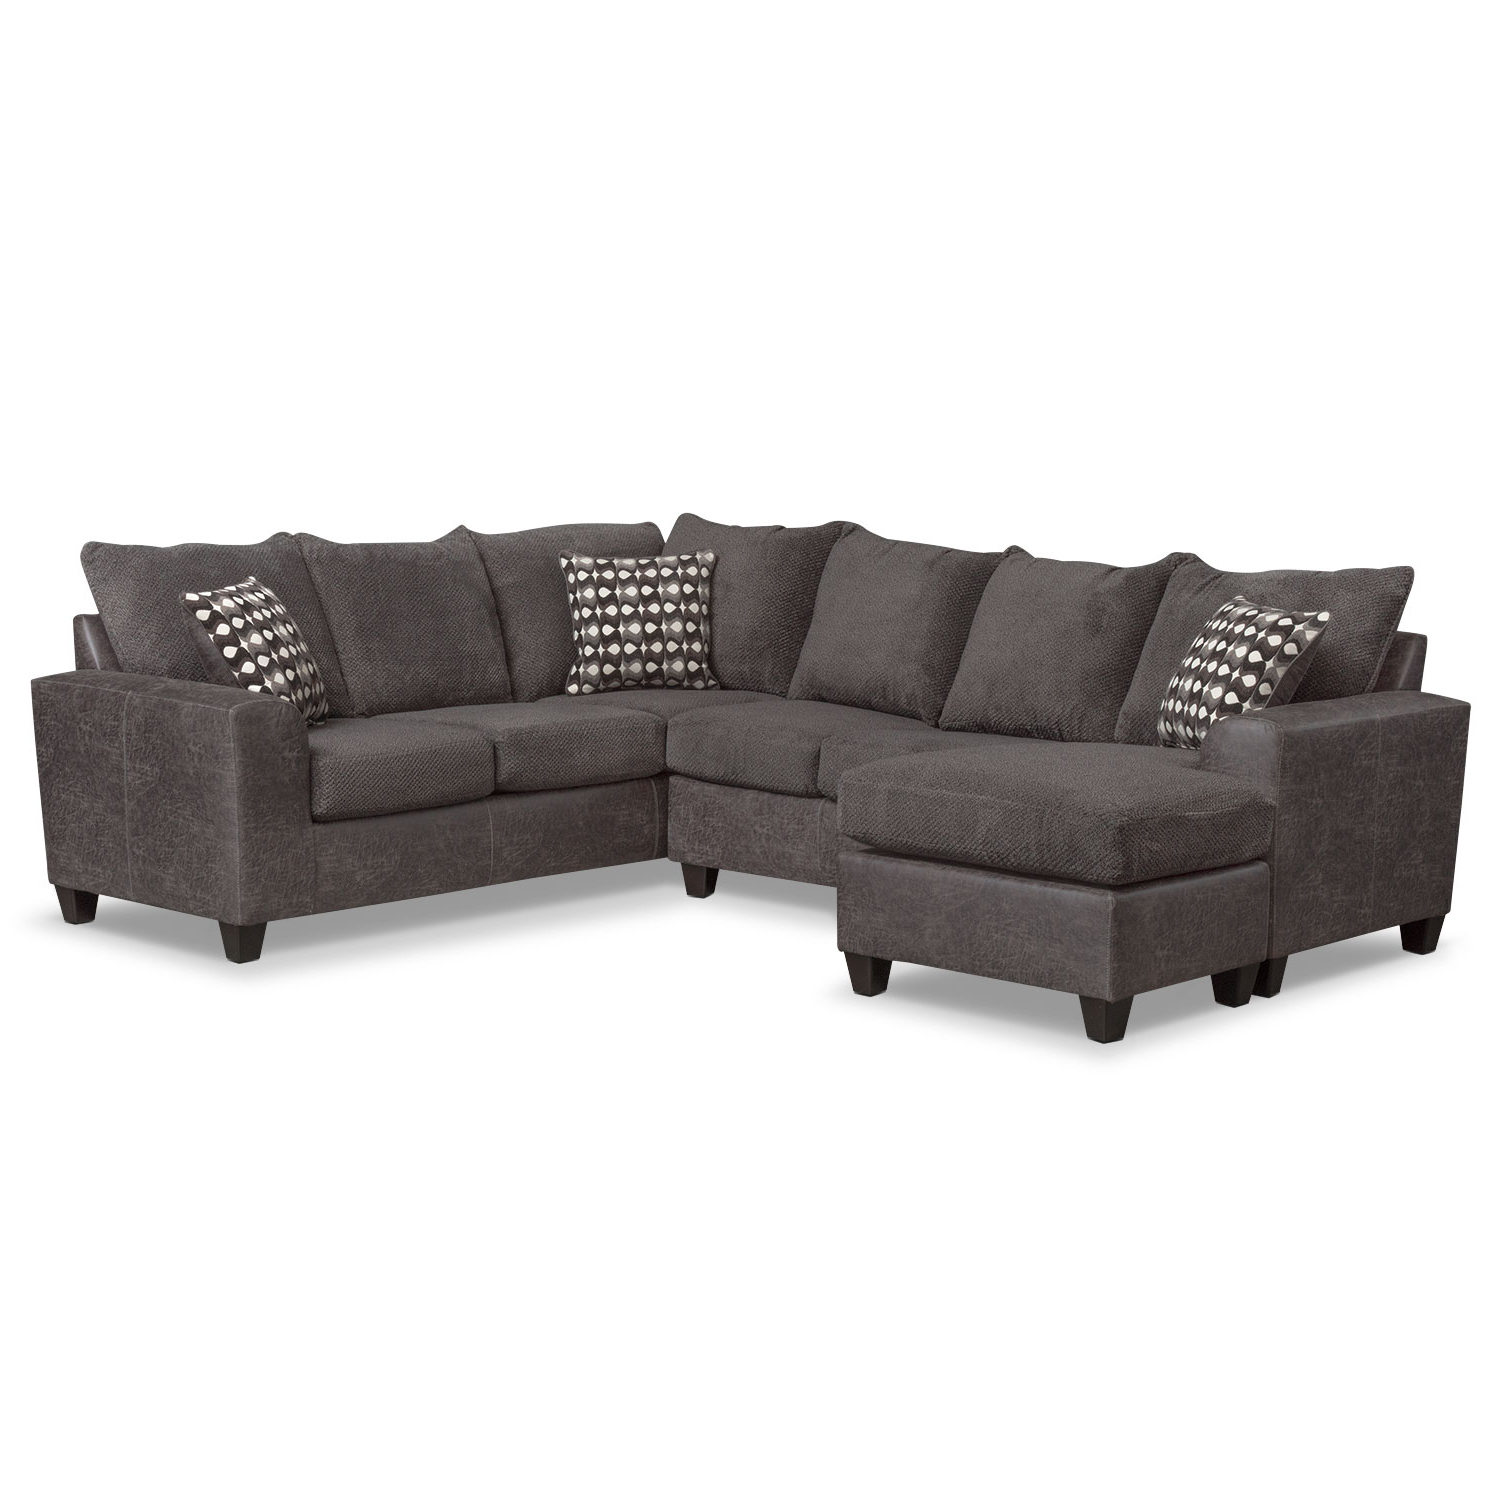 Lucy Grey 2 Piece Sleeper Sectionals With Laf Chaise In Trendy Sleeper Sectional With Chaise – Tidex (View 9 of 20)